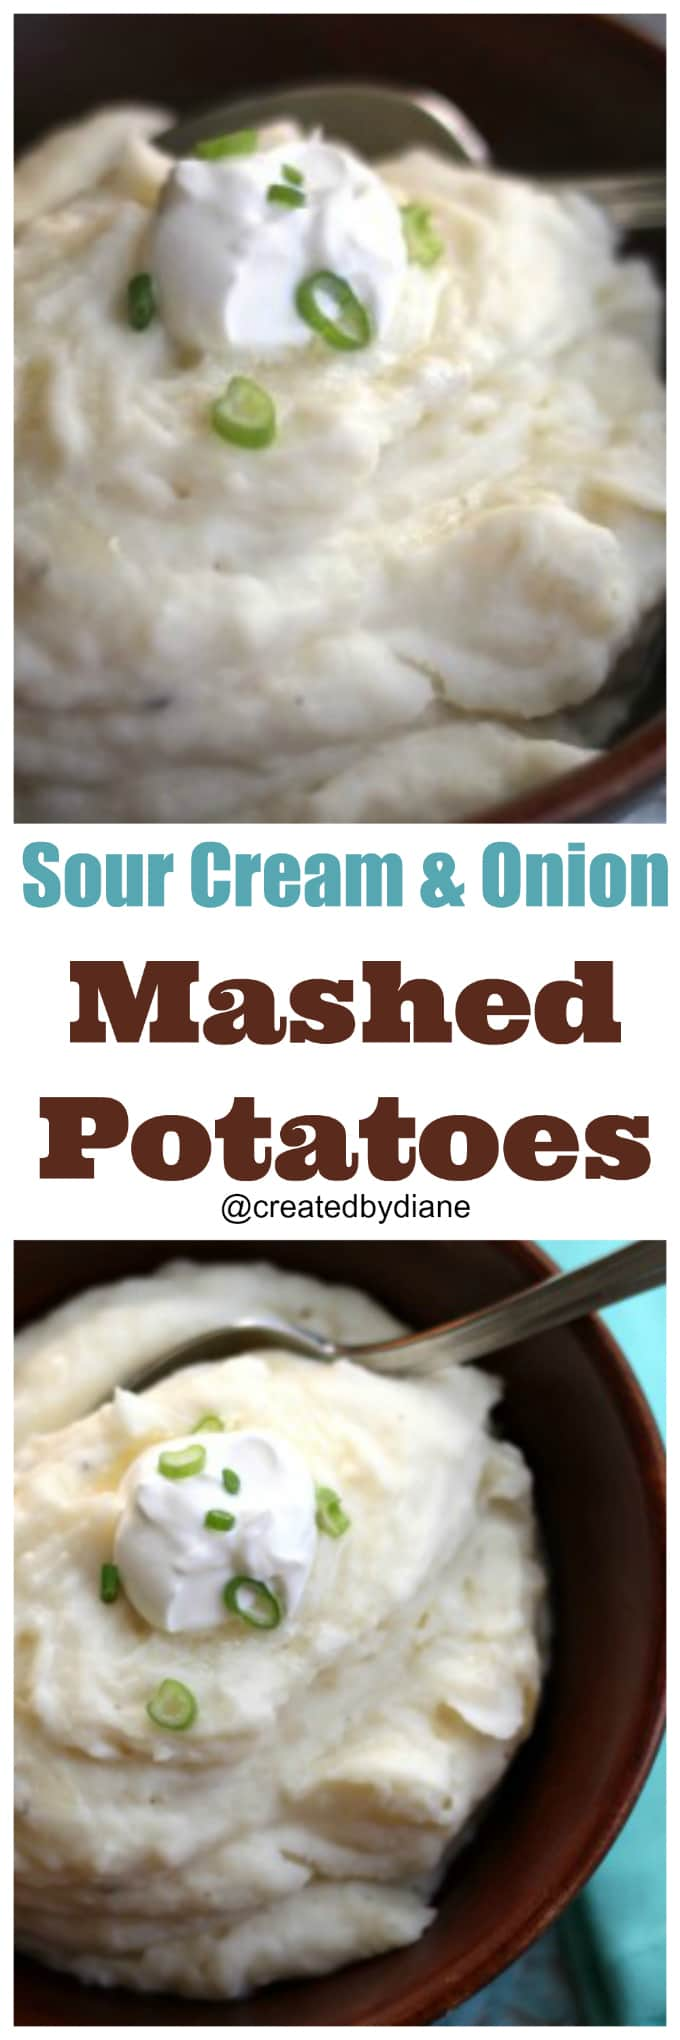 sour-cream-and-onion-mashed-potatoes